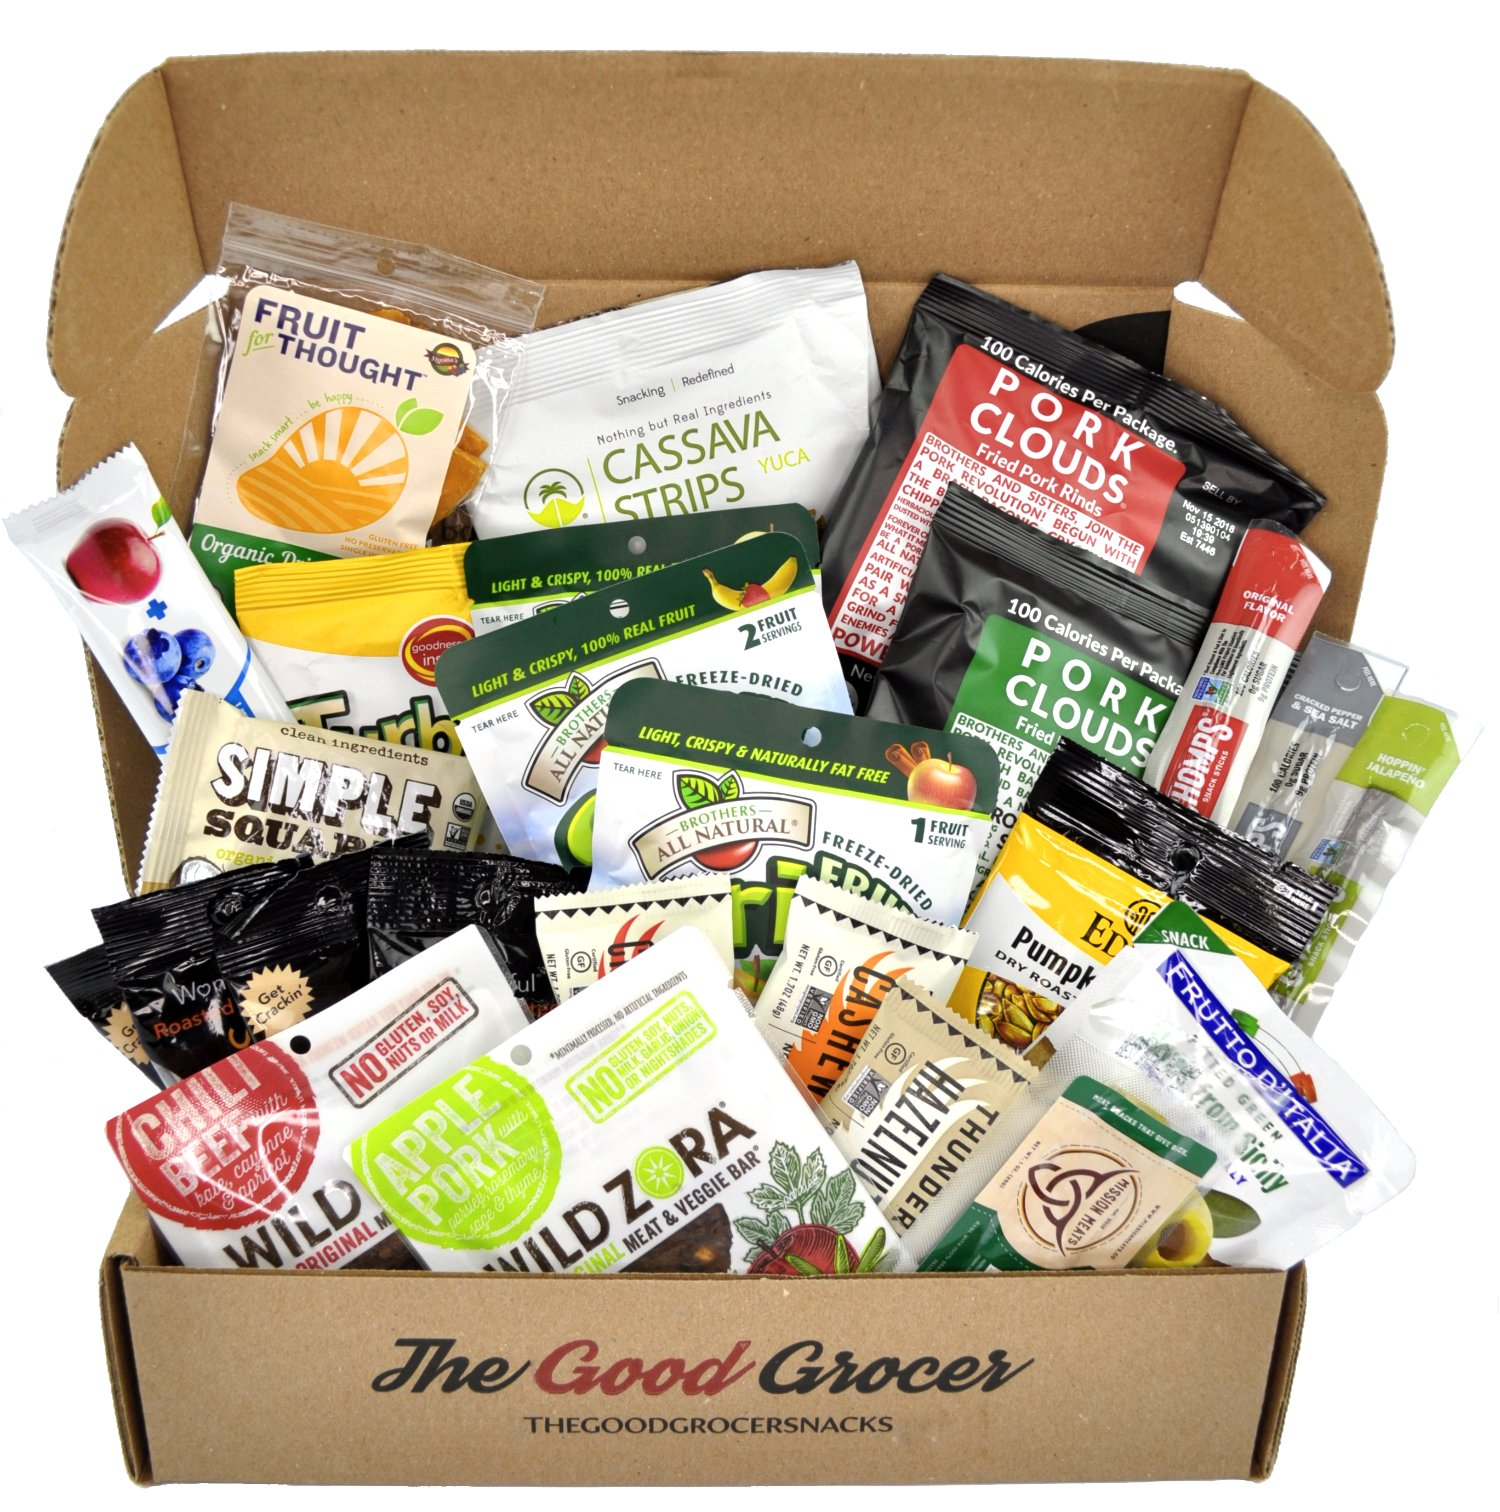 PALEO Healthy Snacks Care Package (25 Ct): Protein Energy Bars, Grass Fed Beef Meat Sticks Jerky Bars, Plantain Chips, Nuts, Crispy Fruit, Fitness Variety Pack, CrossFit, Athlete, Military by The Good Grocer